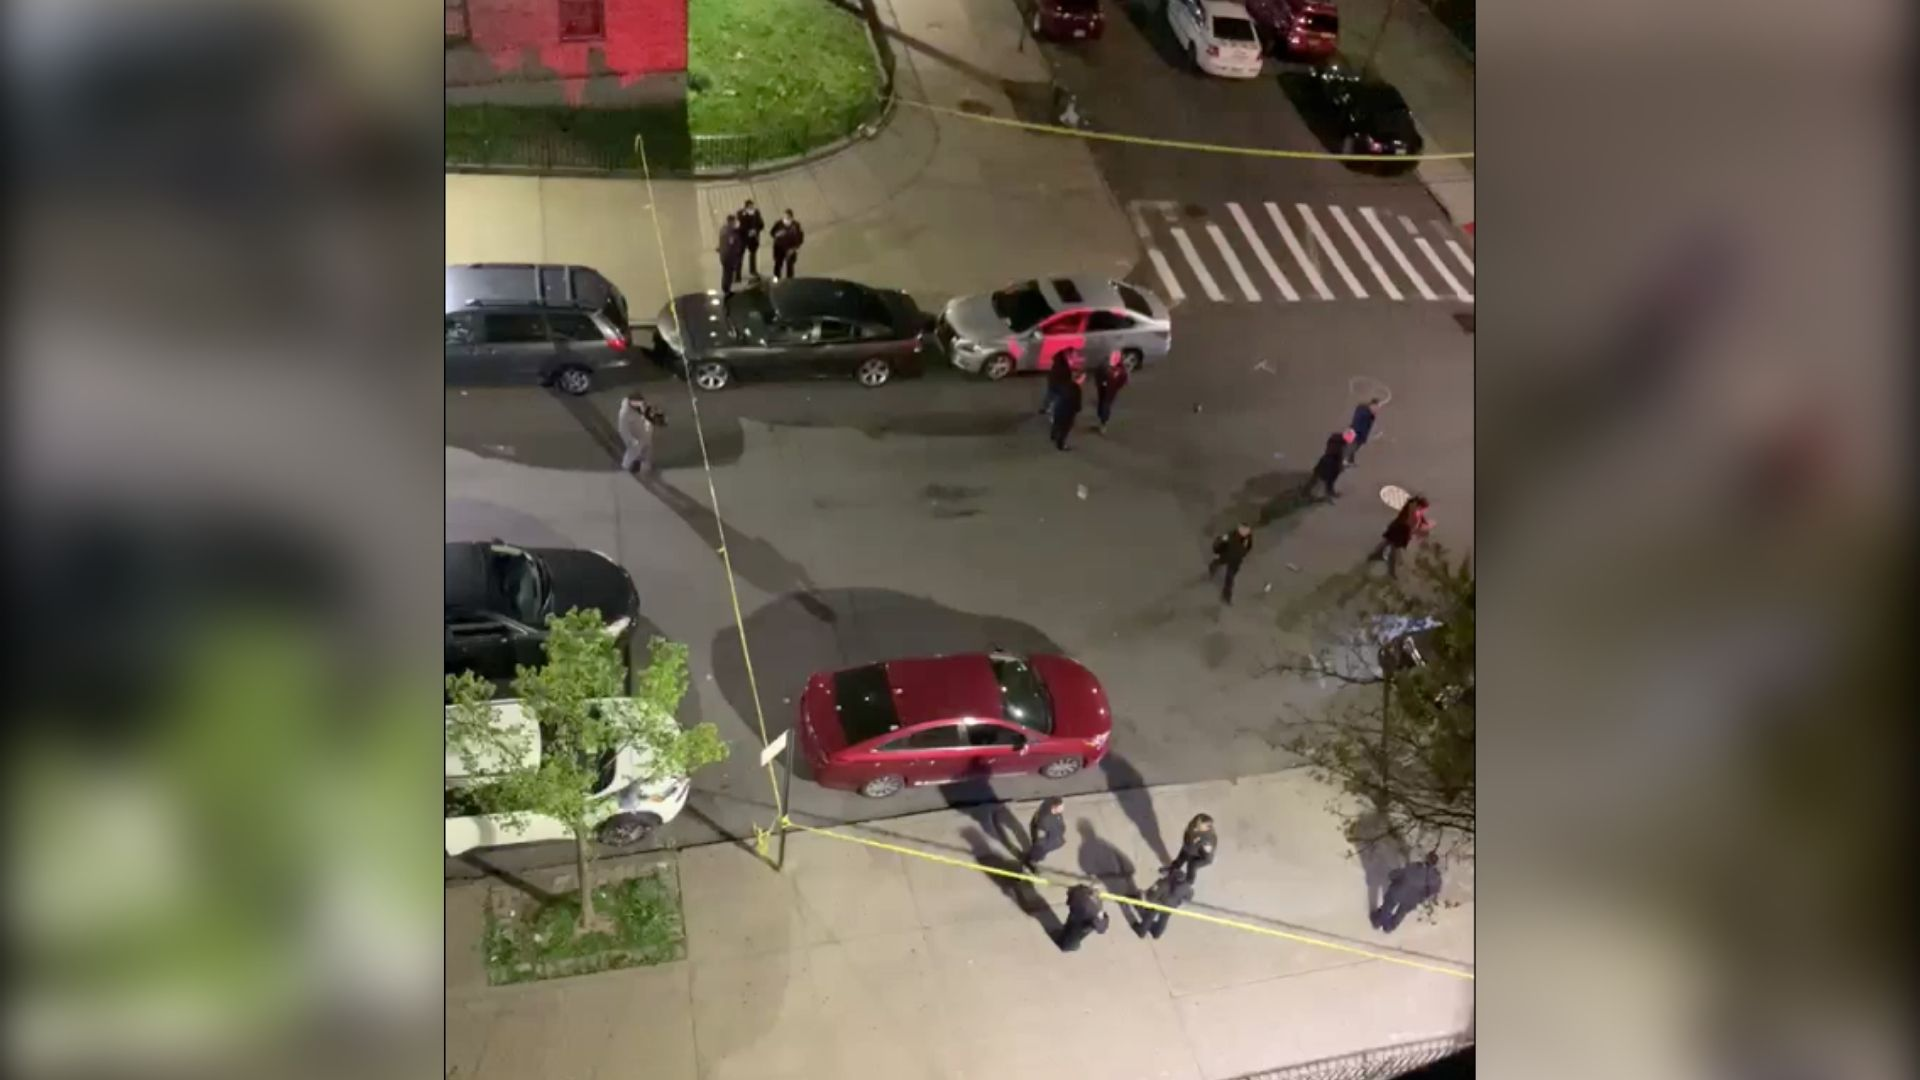 Police investigating after a 16-year-old boy was shot in the head outside the Whitman Houses in Fort Greene, Brooklyn late Thursday night, April 22, 2021, the NYPD said.